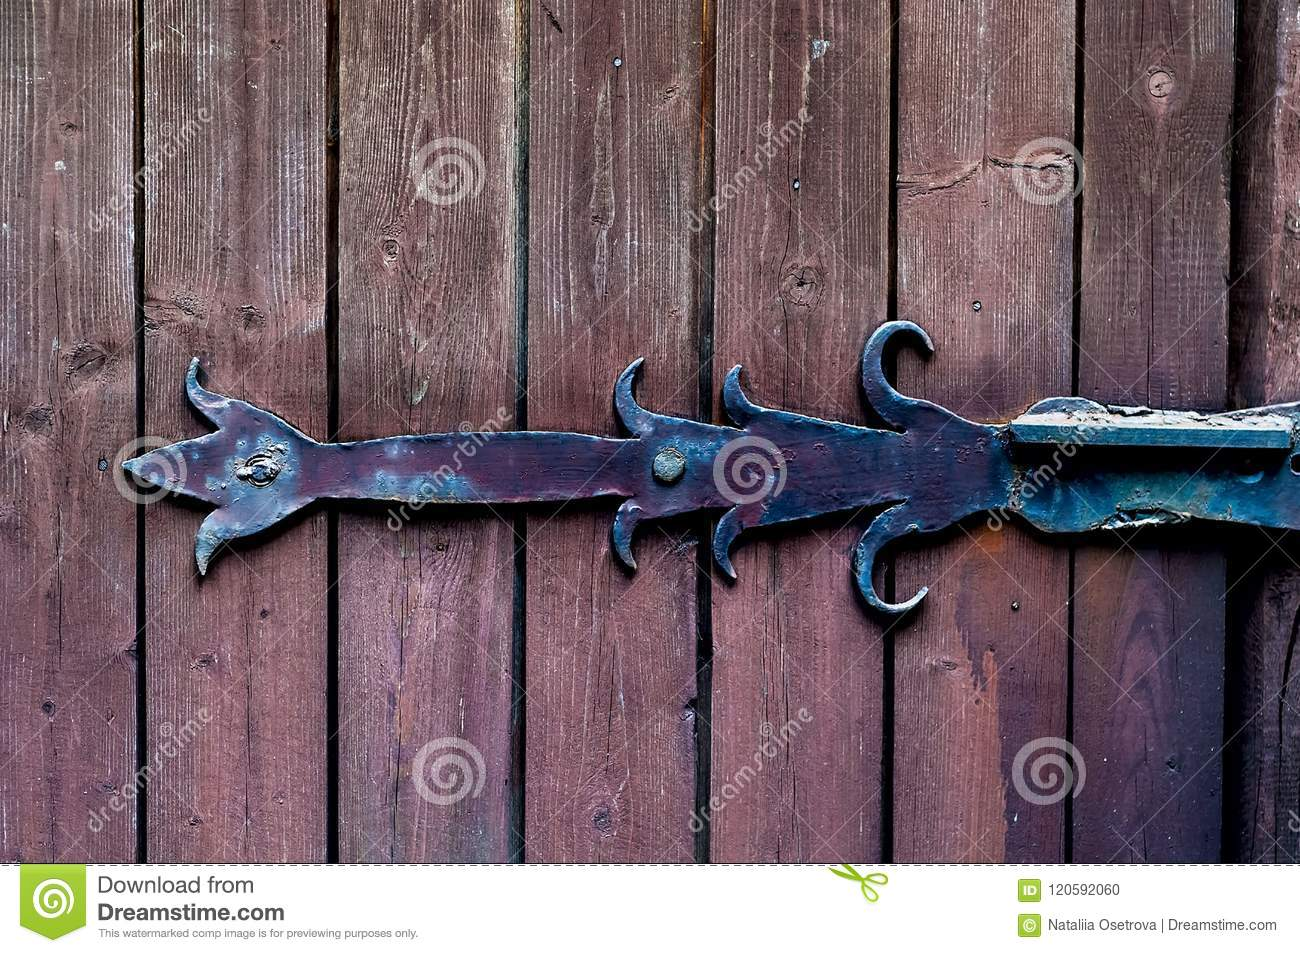 Texture smooth wooden boards painted with age with vintage iron loop, natural light, copy space,